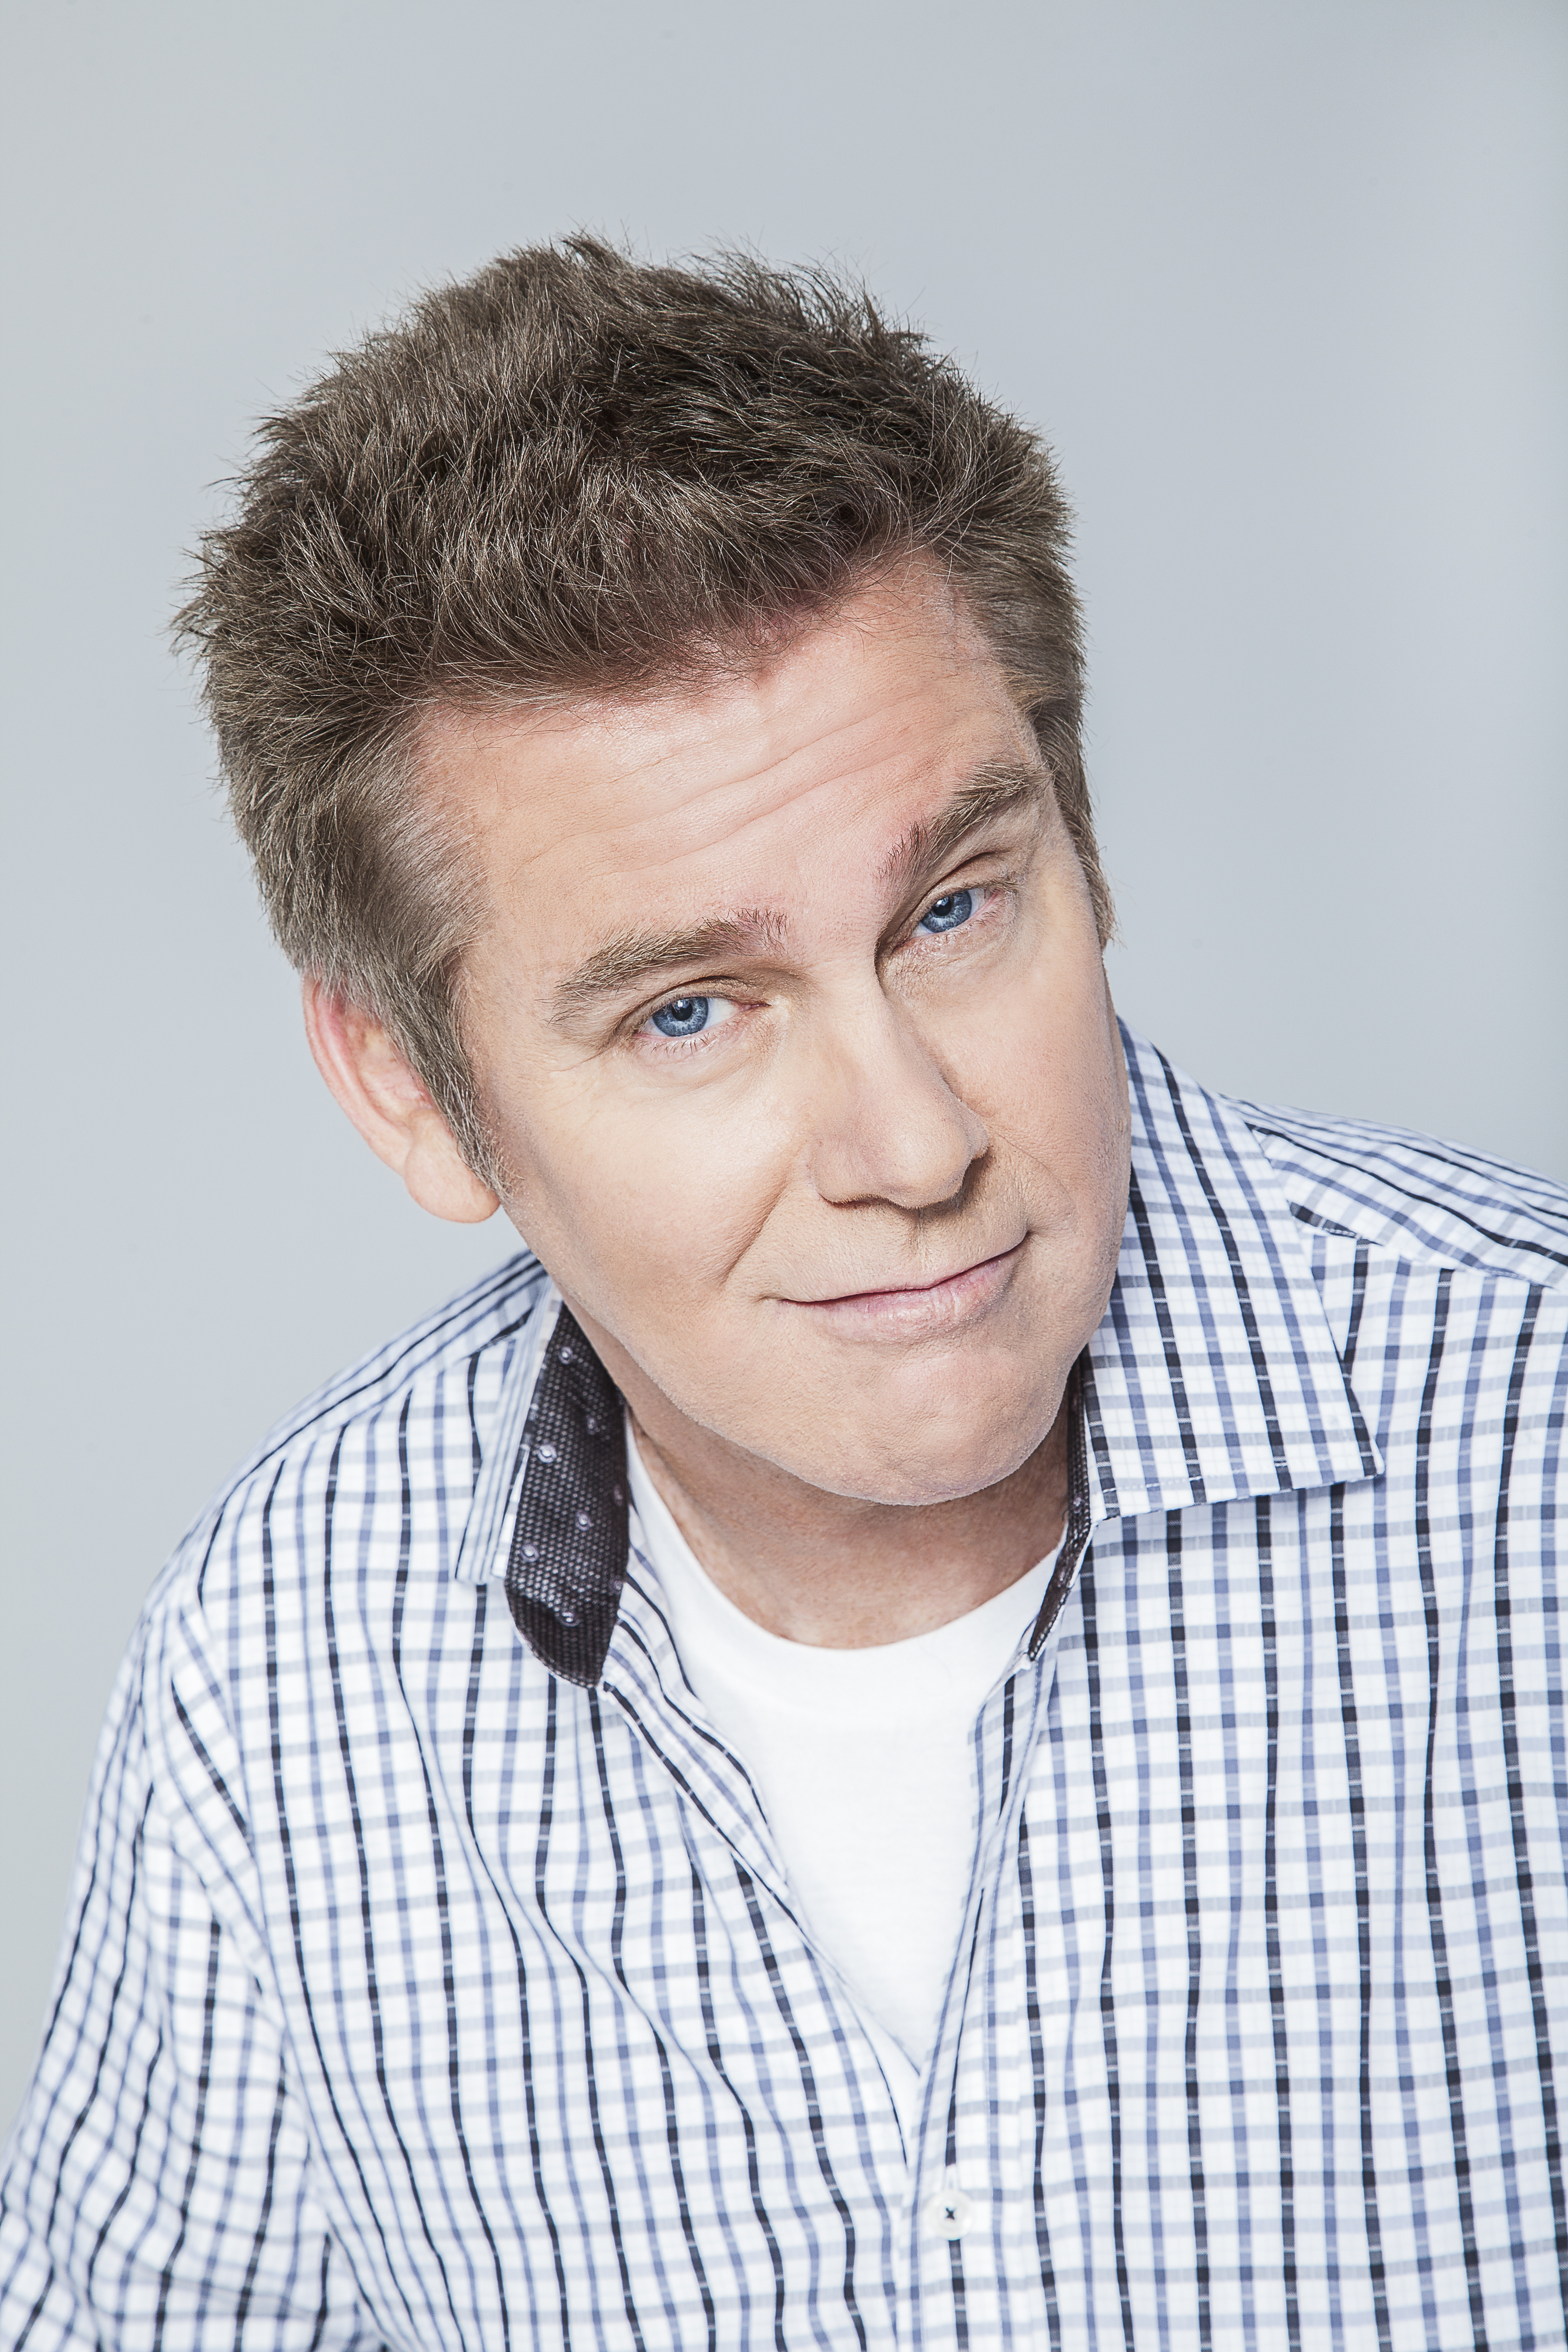 Brian Regan Brings the Laughter to Downtown St. Pete on July 27th